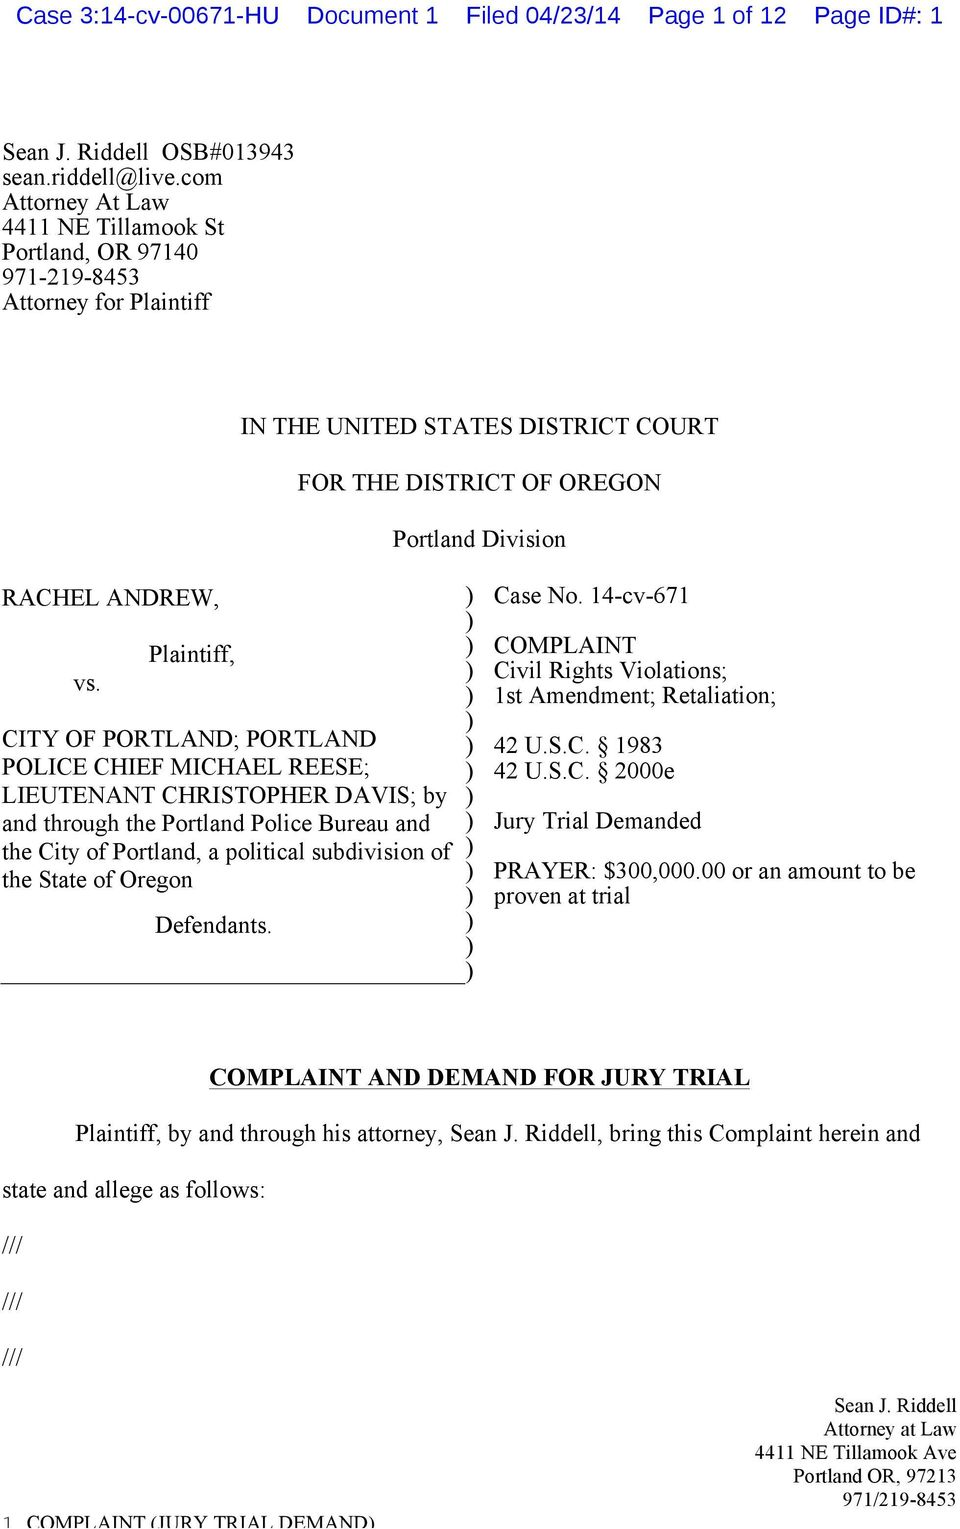 Plaintiff, CITY OF PORTLAND; PORTLAND POLICE CHIEF MICHAEL REESE; LIEUTENANT CHRISTOPHER DAVIS; by and through the Portland Police Bureau and the City of Portland, a political subdivision of the